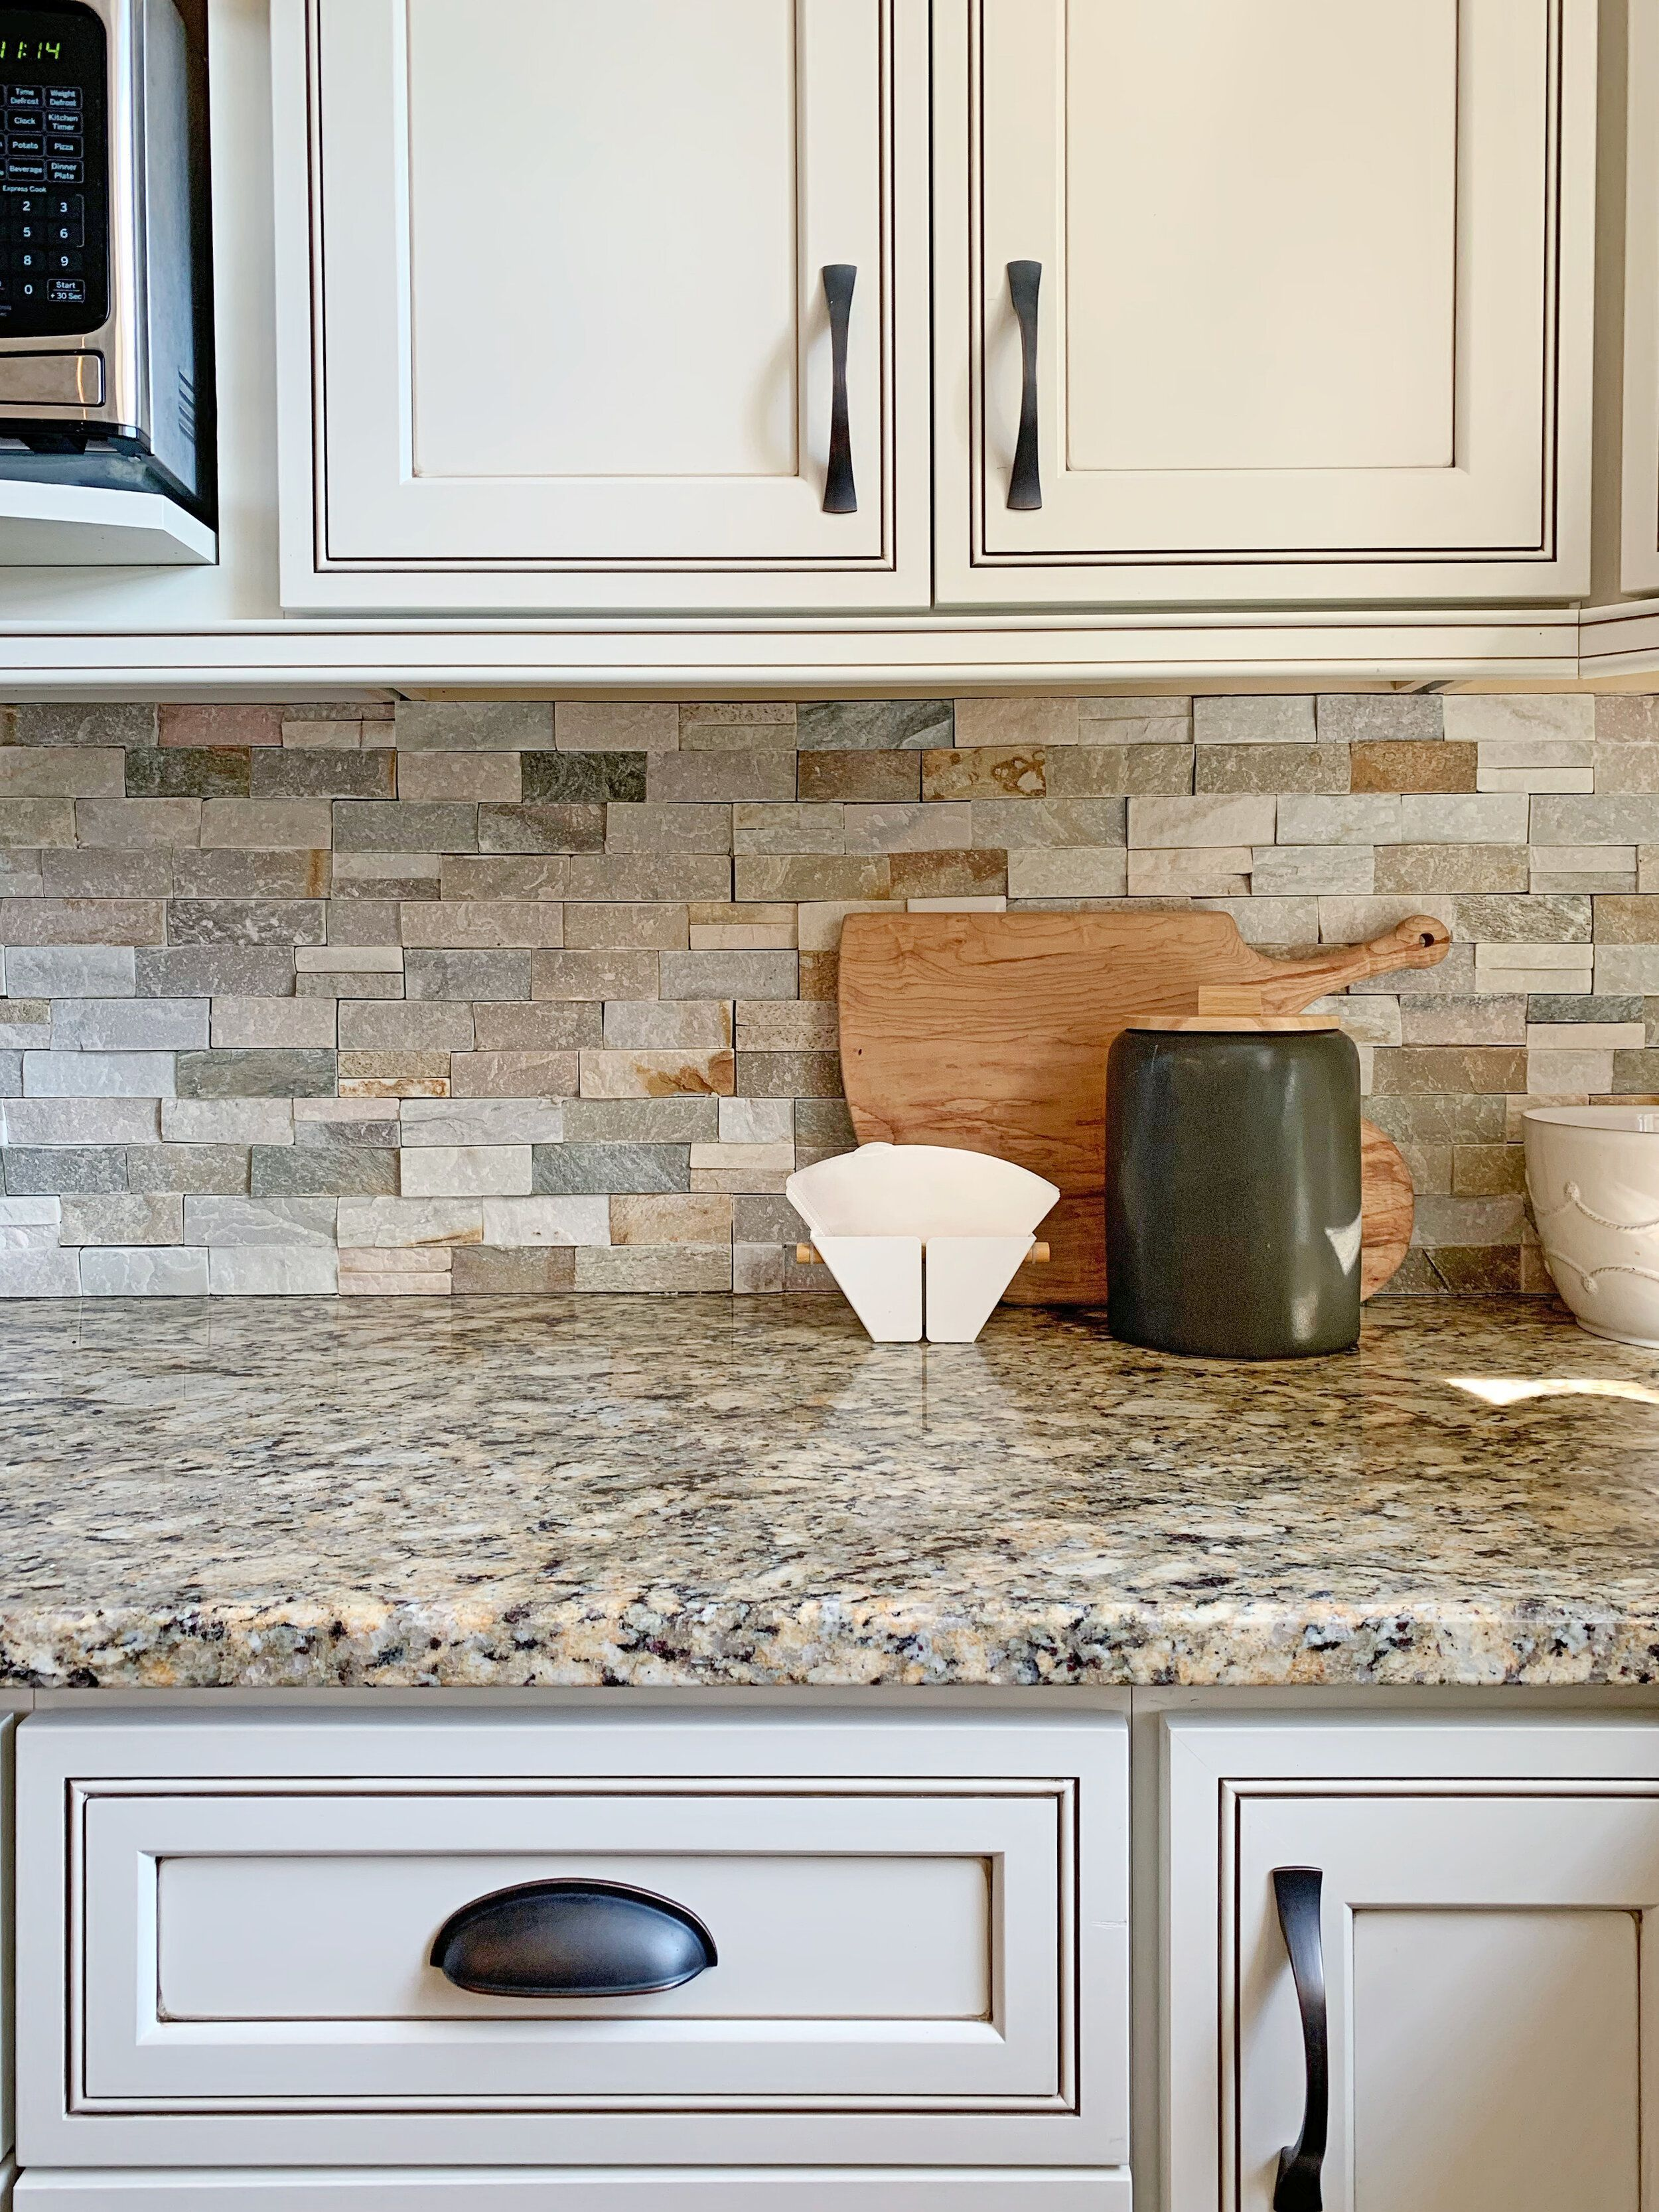 How To Work With Dated Granite In Your Kitchen In 2021 Brown Granite Countertops Antique White Cabinets Antique White Kitchen